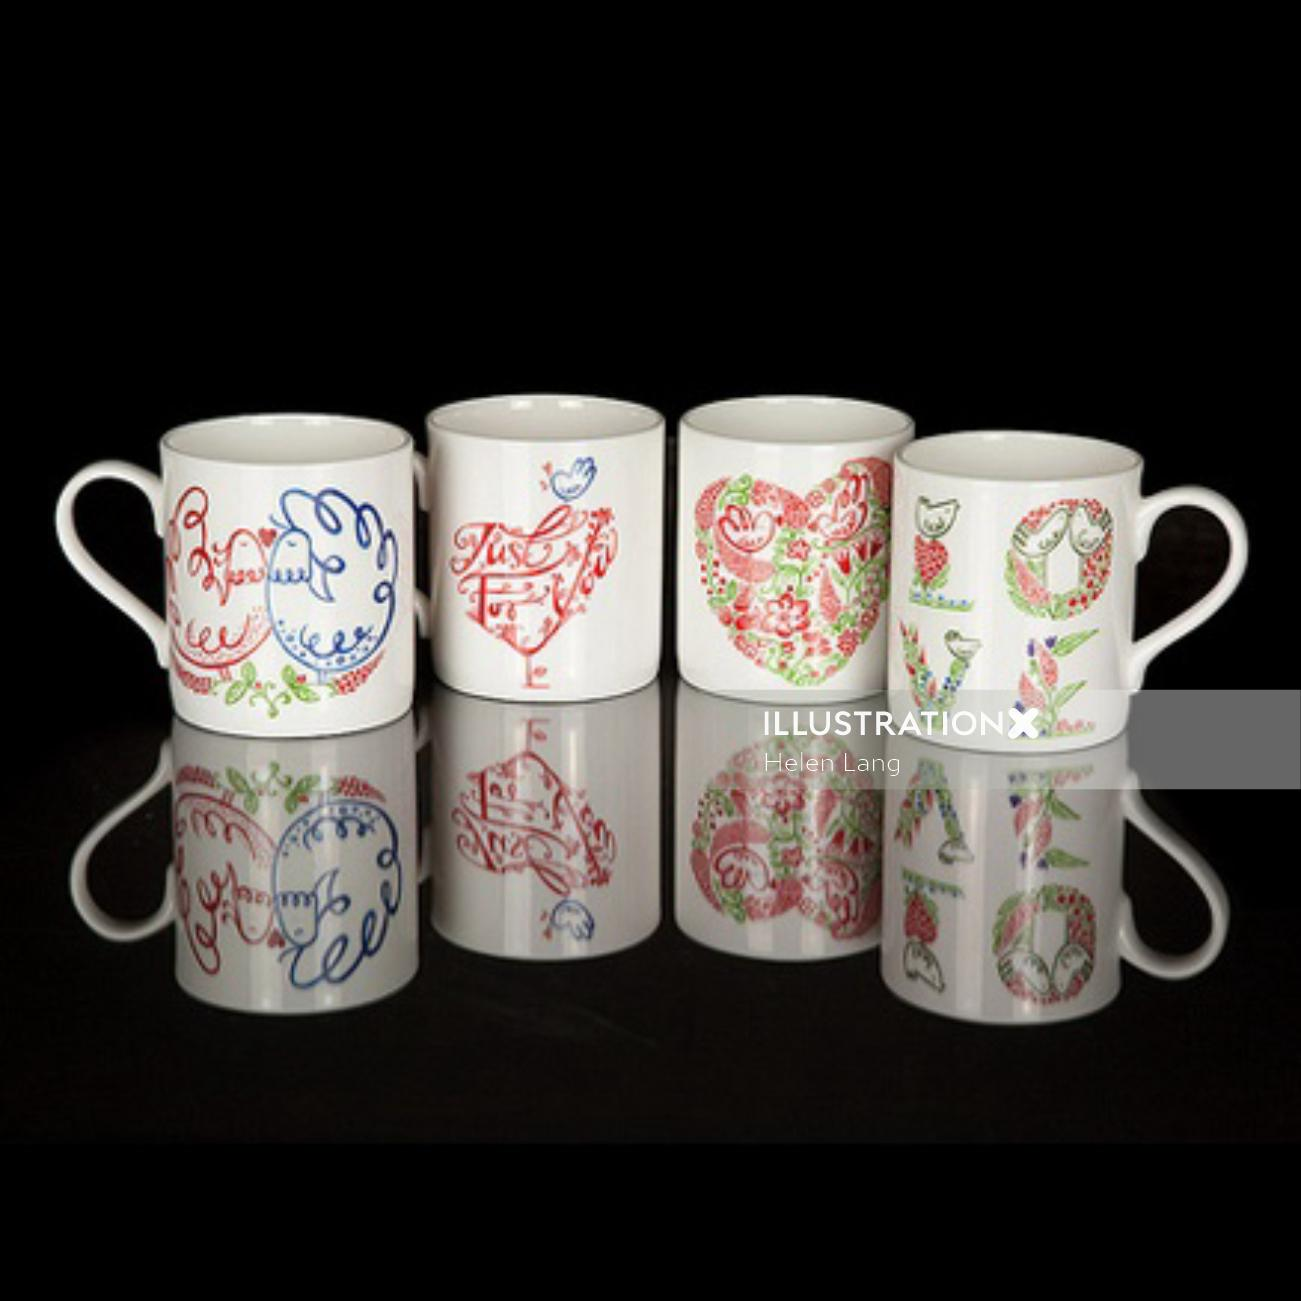 Illustration on coffee cups by Helen Lang